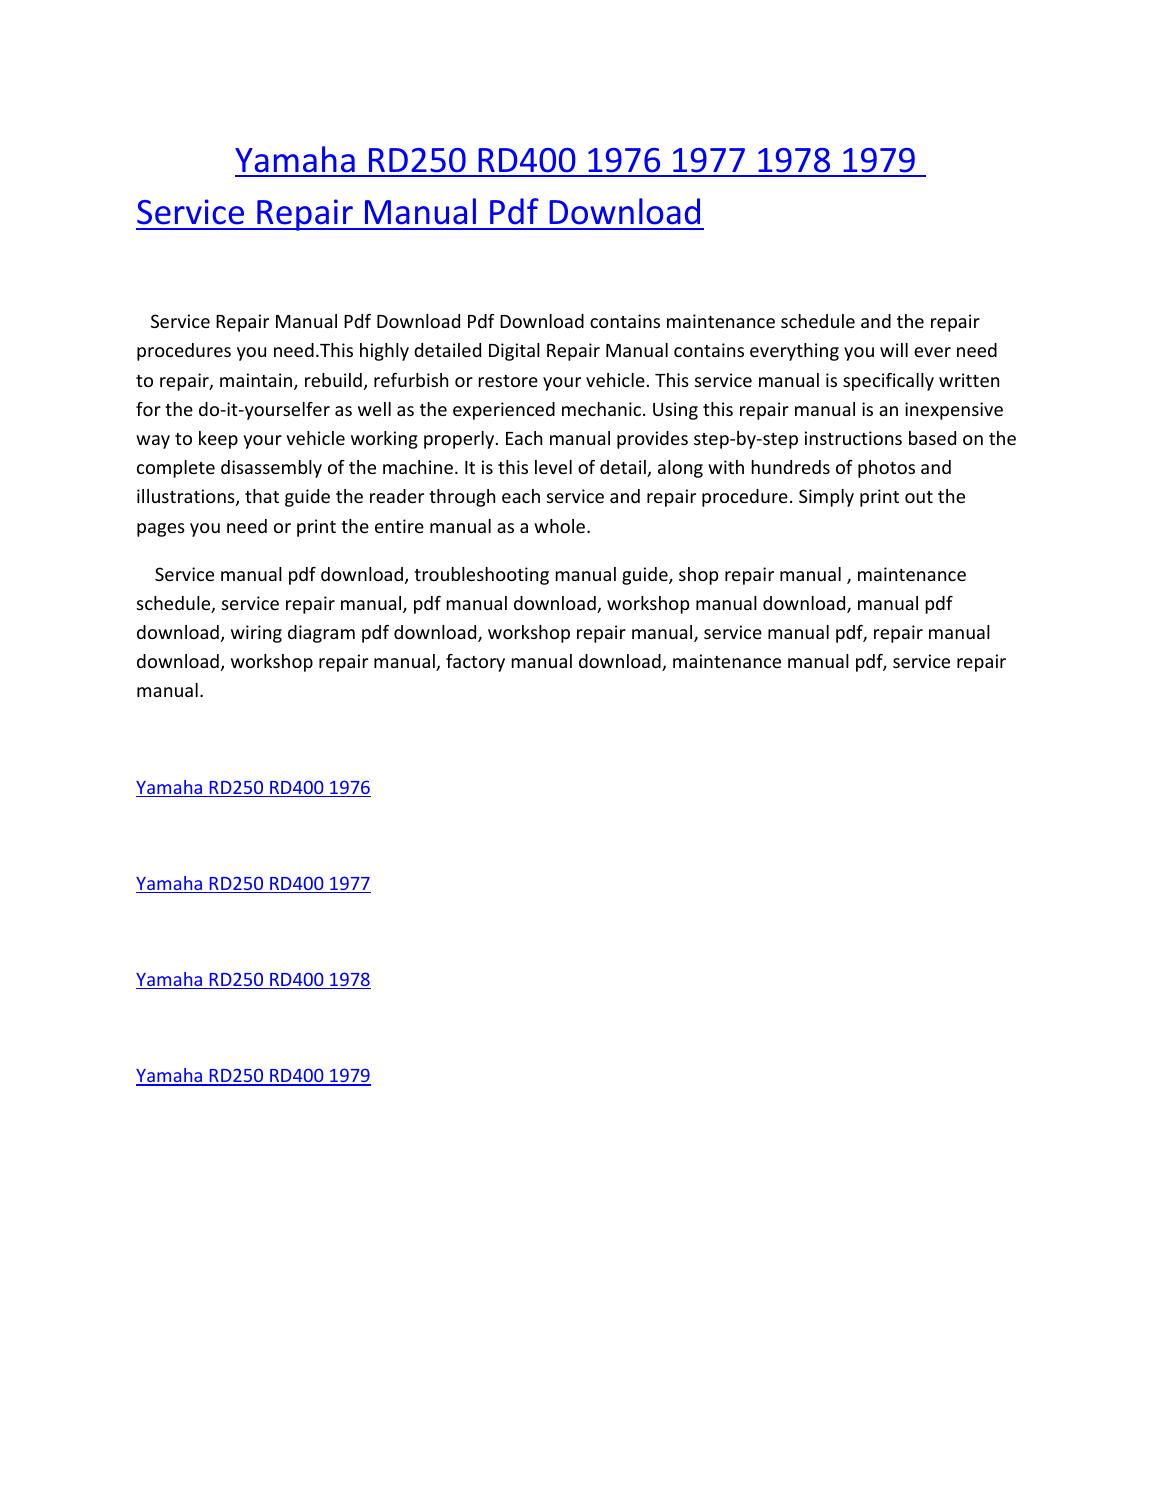 Yamaha rd250 rd400 1976 1977 1978 1979 service repair manual pdf download  by amurgului - issuu